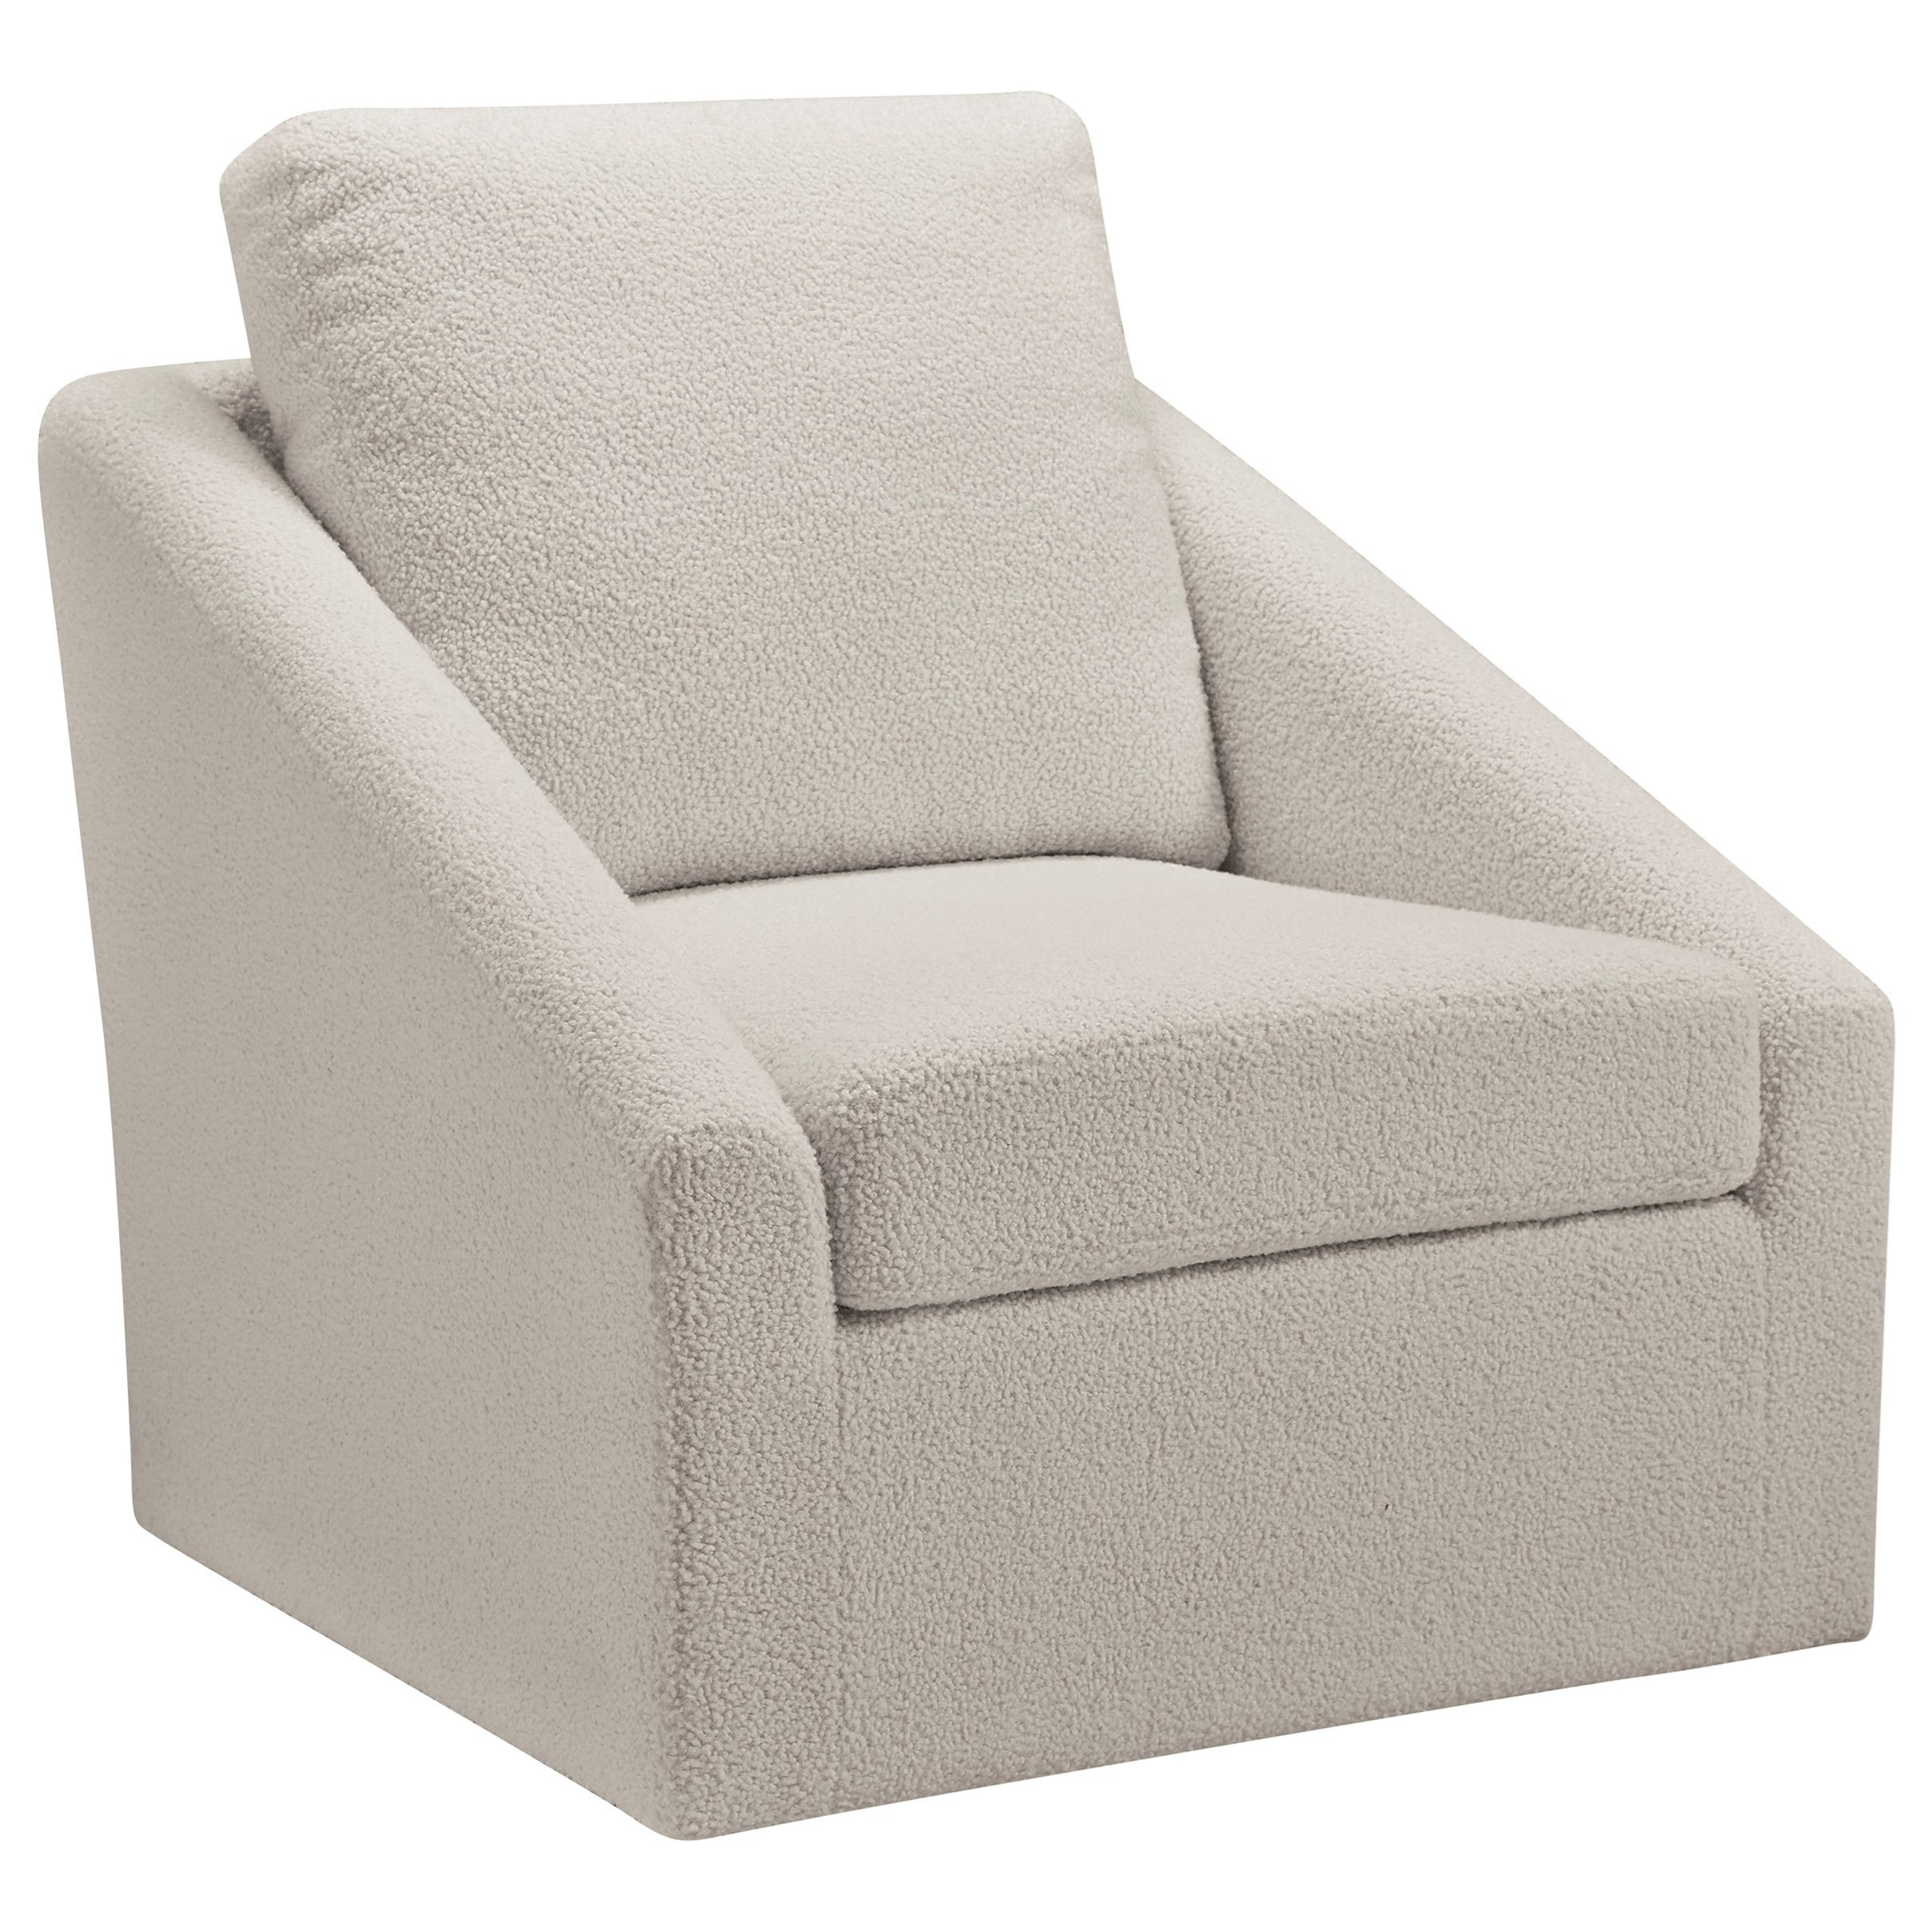 Signature Design By Ashley Wysler Swivel Accent Chair In Cream Sherpa Fabric Royal Furniture Upholstered Chairs